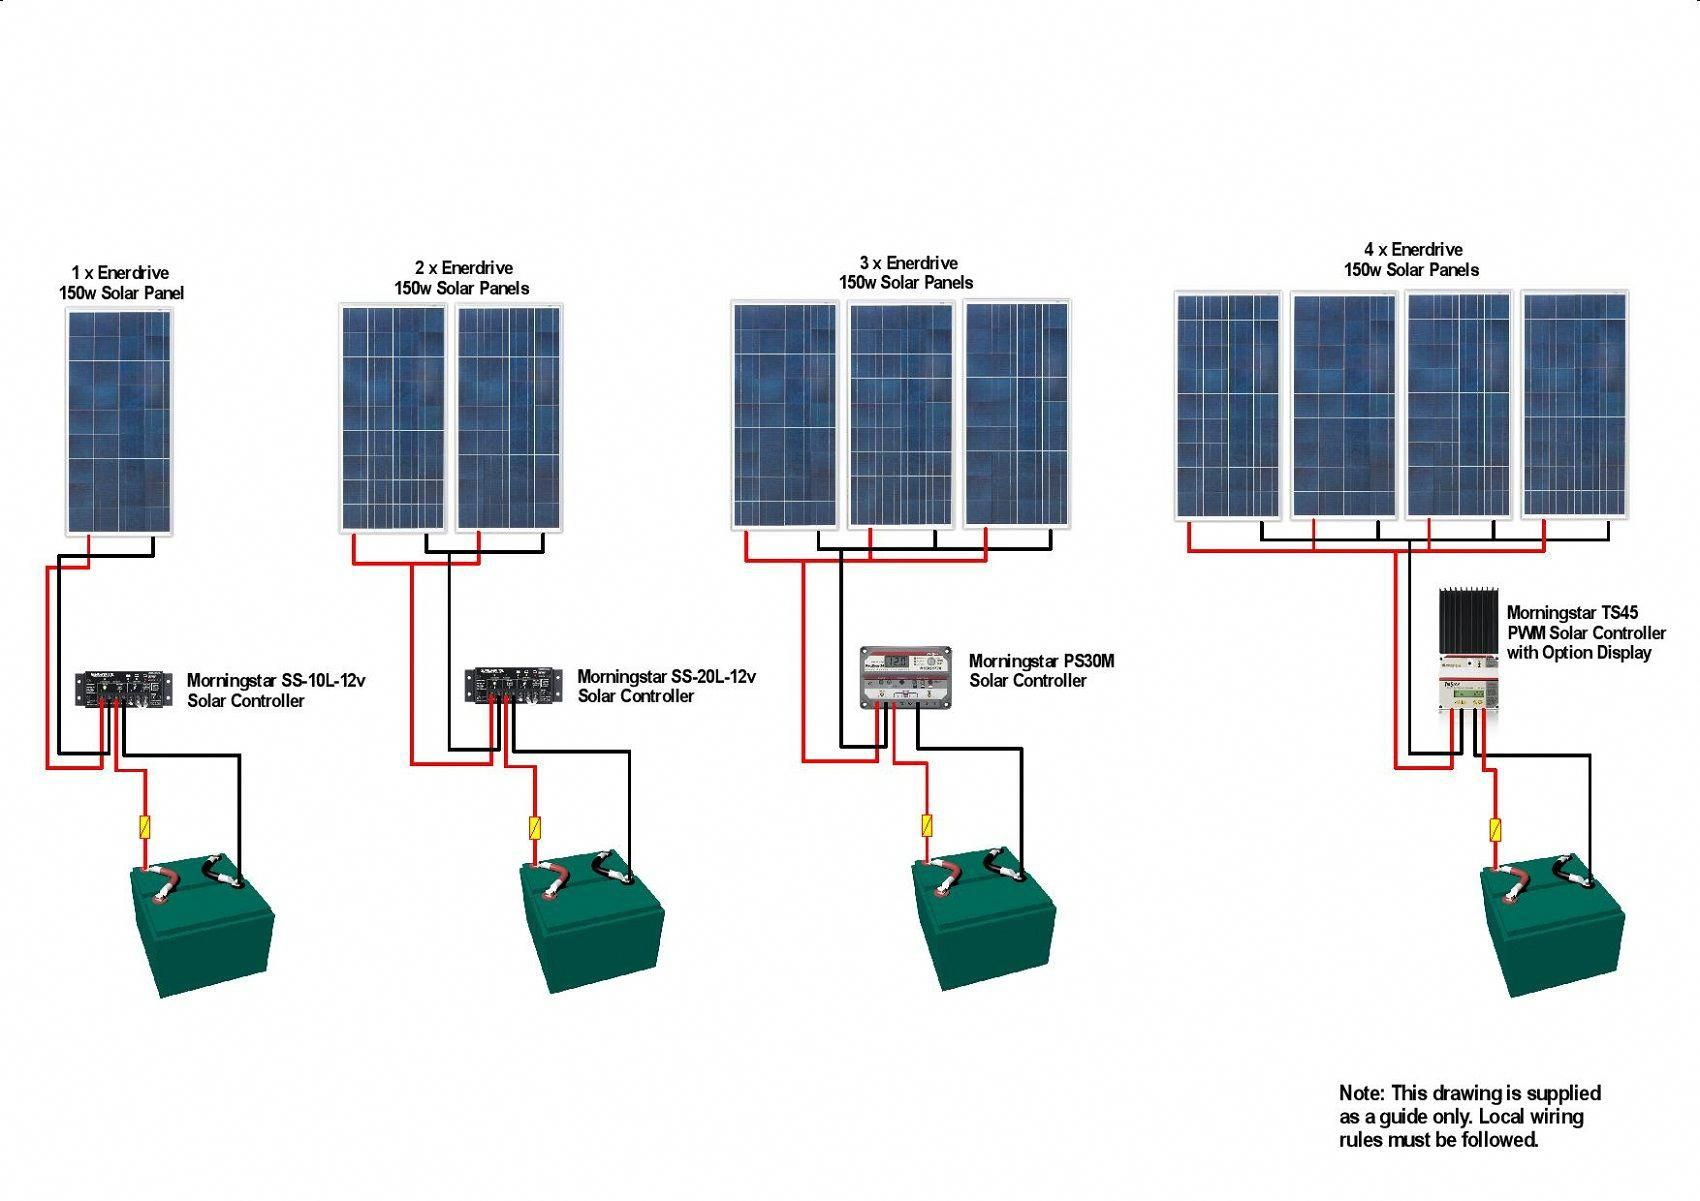 wiring diagram solar panels installation 2000 watt solar panel wiring diagram dat wiring diagrams  2000 watt solar panel wiring diagram